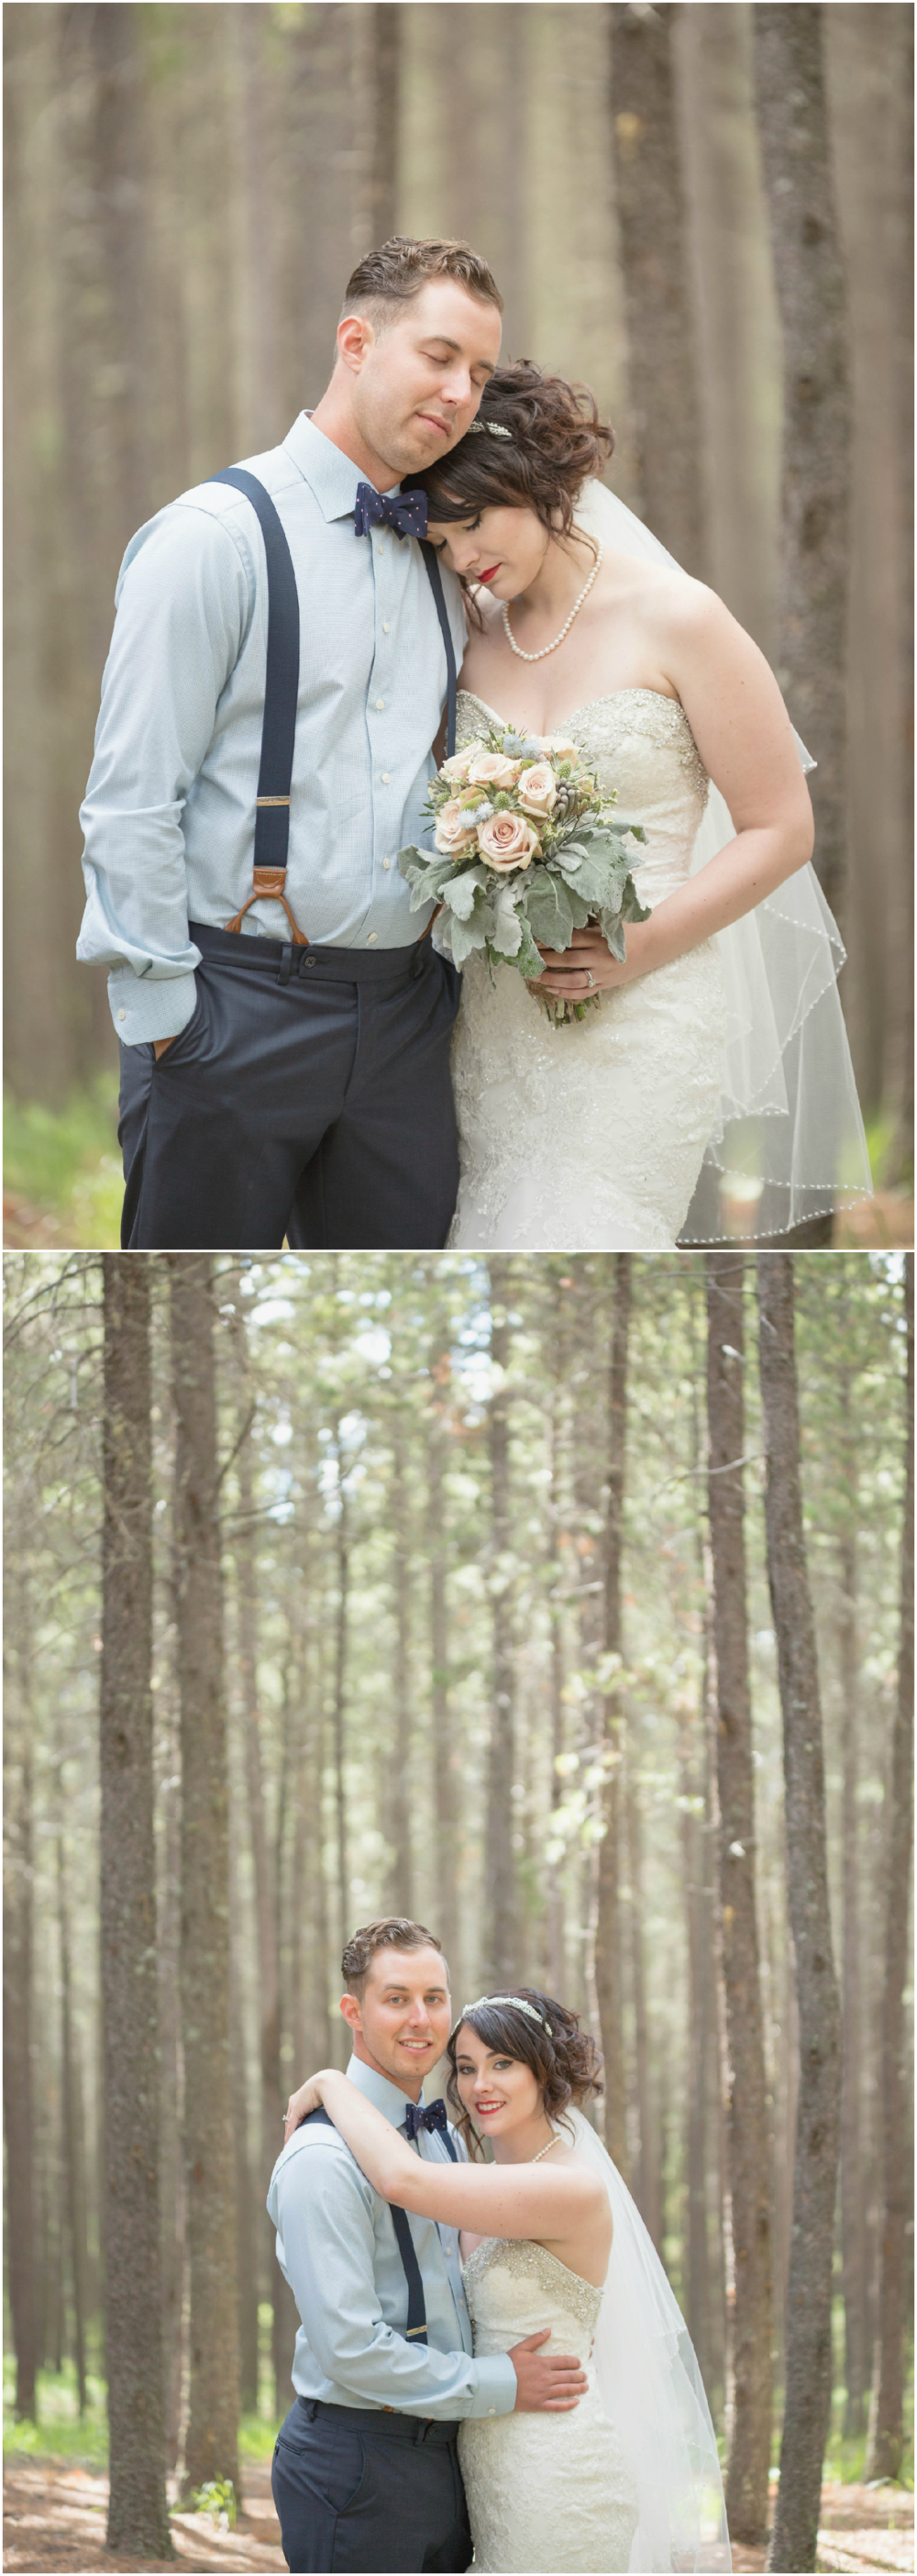 elkwater_wedding_photography_26.png